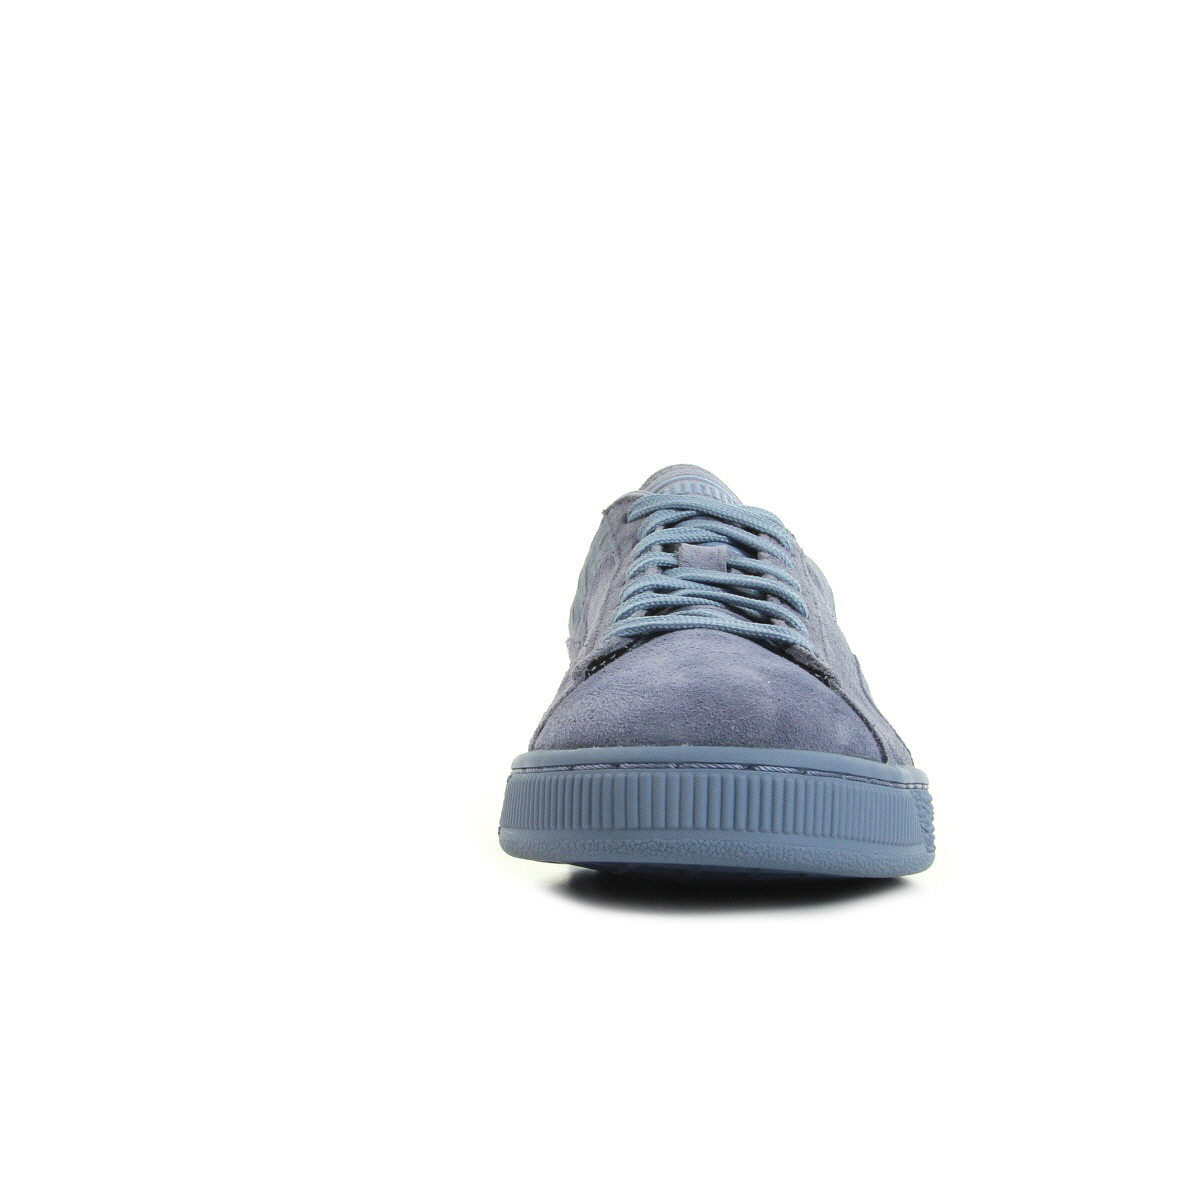 064128df8ef Chaussures Baskets Puma unisexe Suede Classic Casual Emboss taille ...